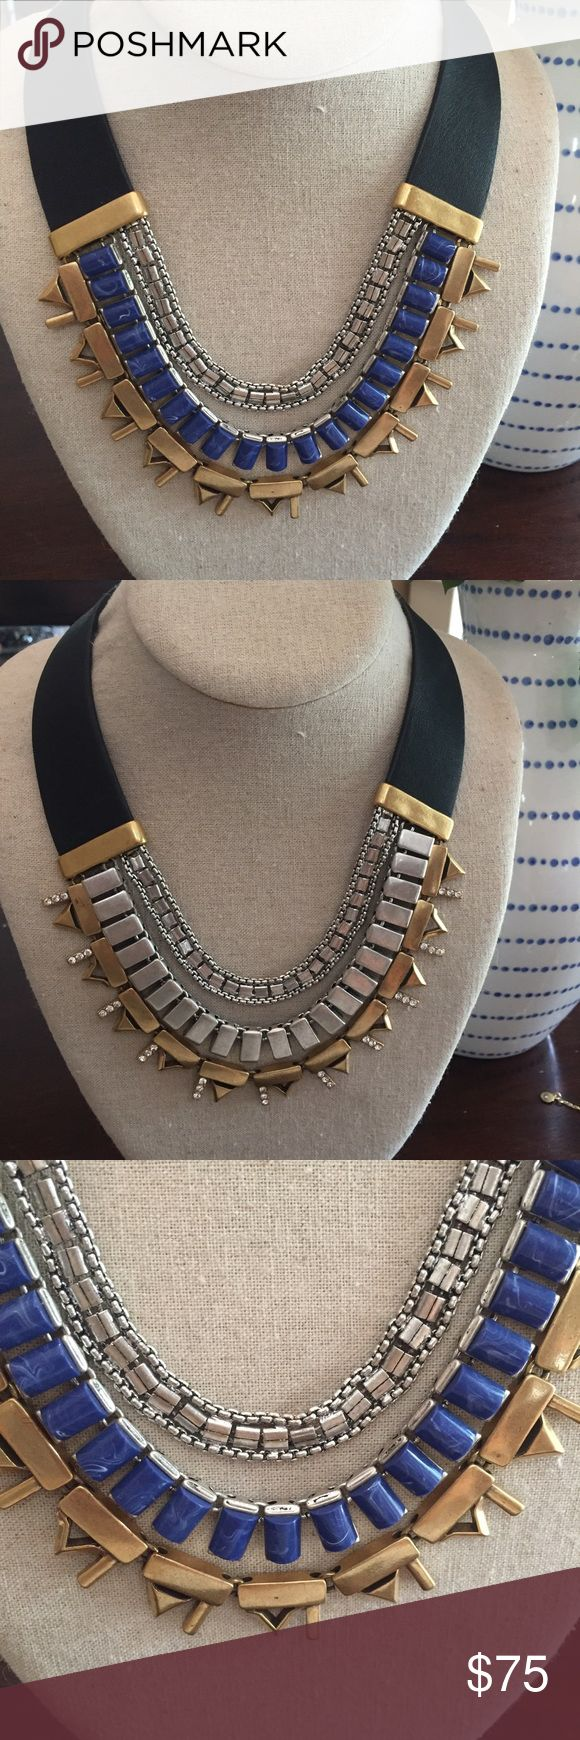 """Authentic Stella and dot necklace Natalie necklace, fall 2015. 15"""" with 3"""" extender Stella & Dot Jewelry Necklaces"""